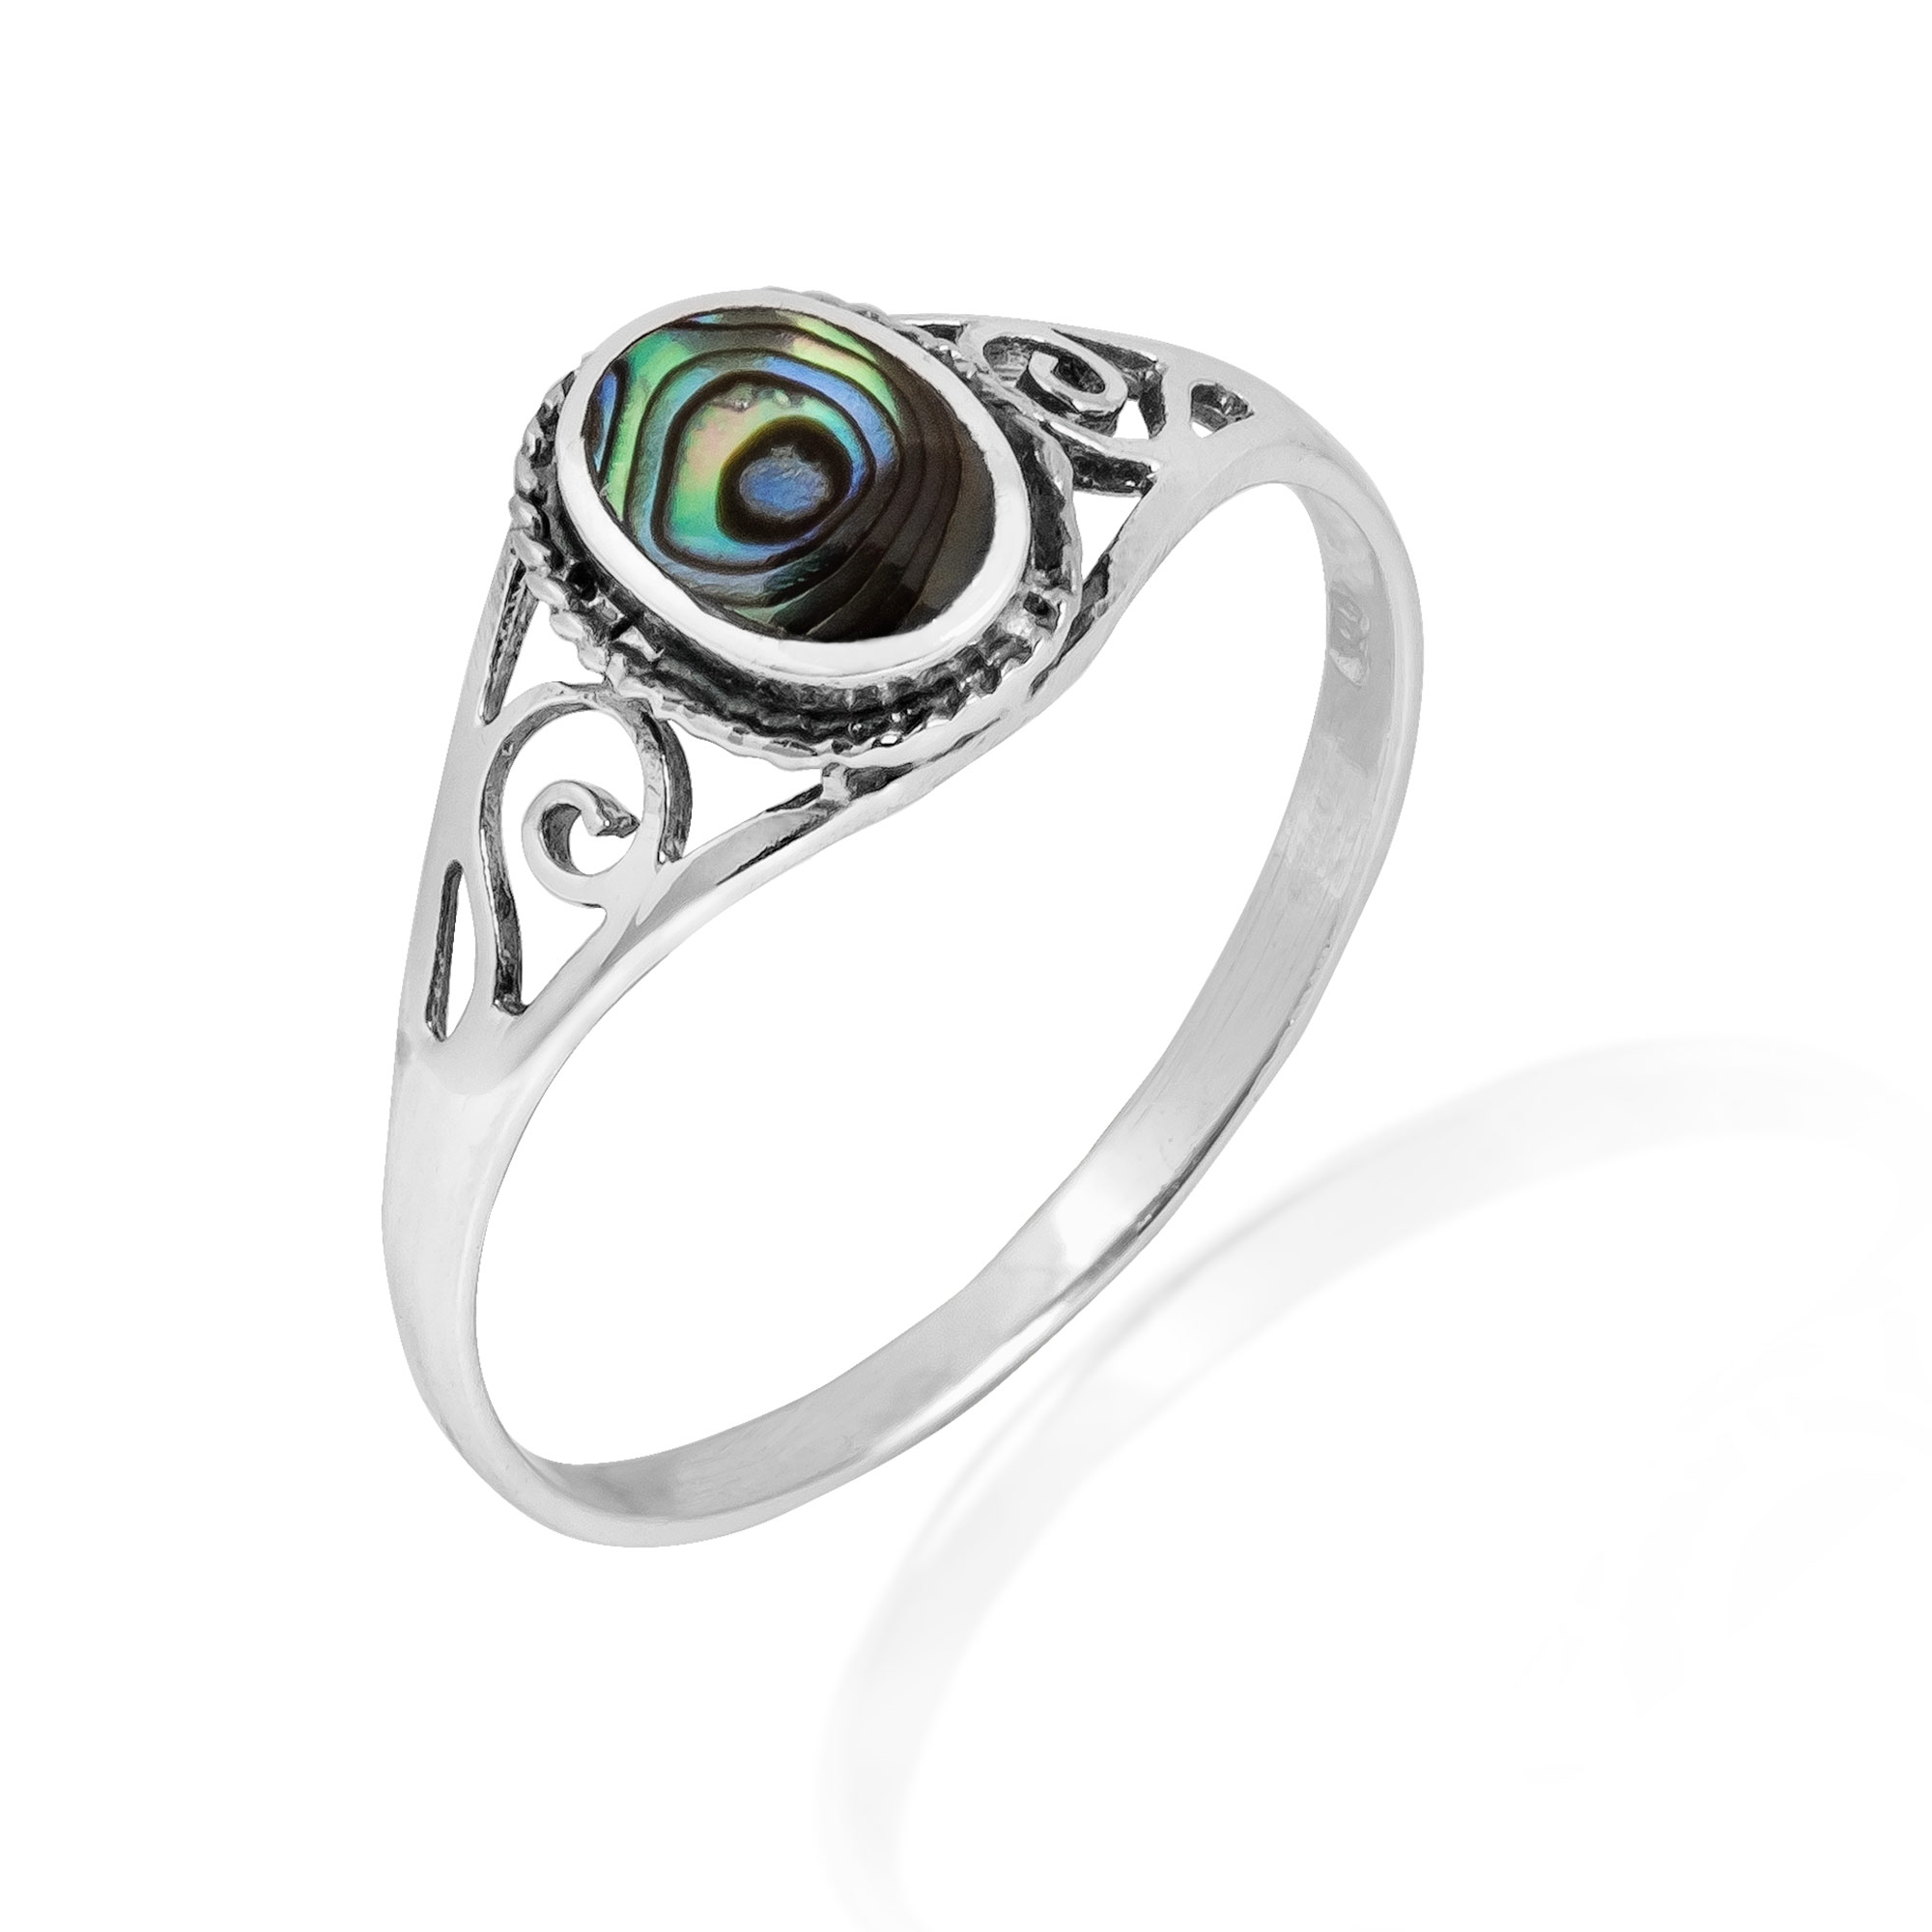 alternative colored rings stone sophie black news trends gold diamond non and abalone rose engagement fashion unconventional best accessories